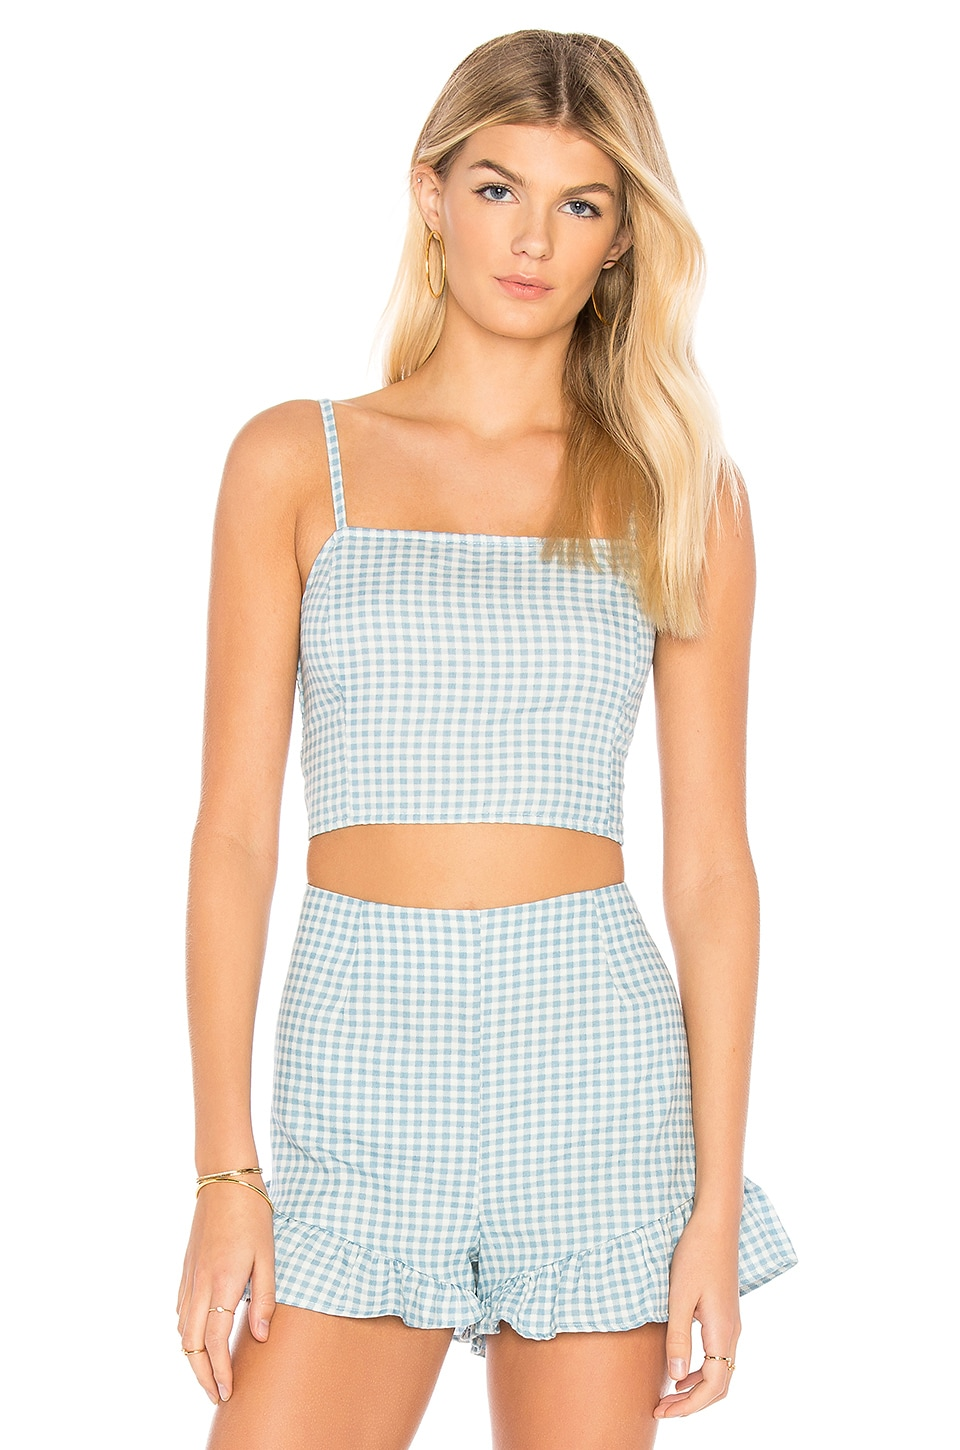 MINKPINK Toto Gingham Top in Chambray & White